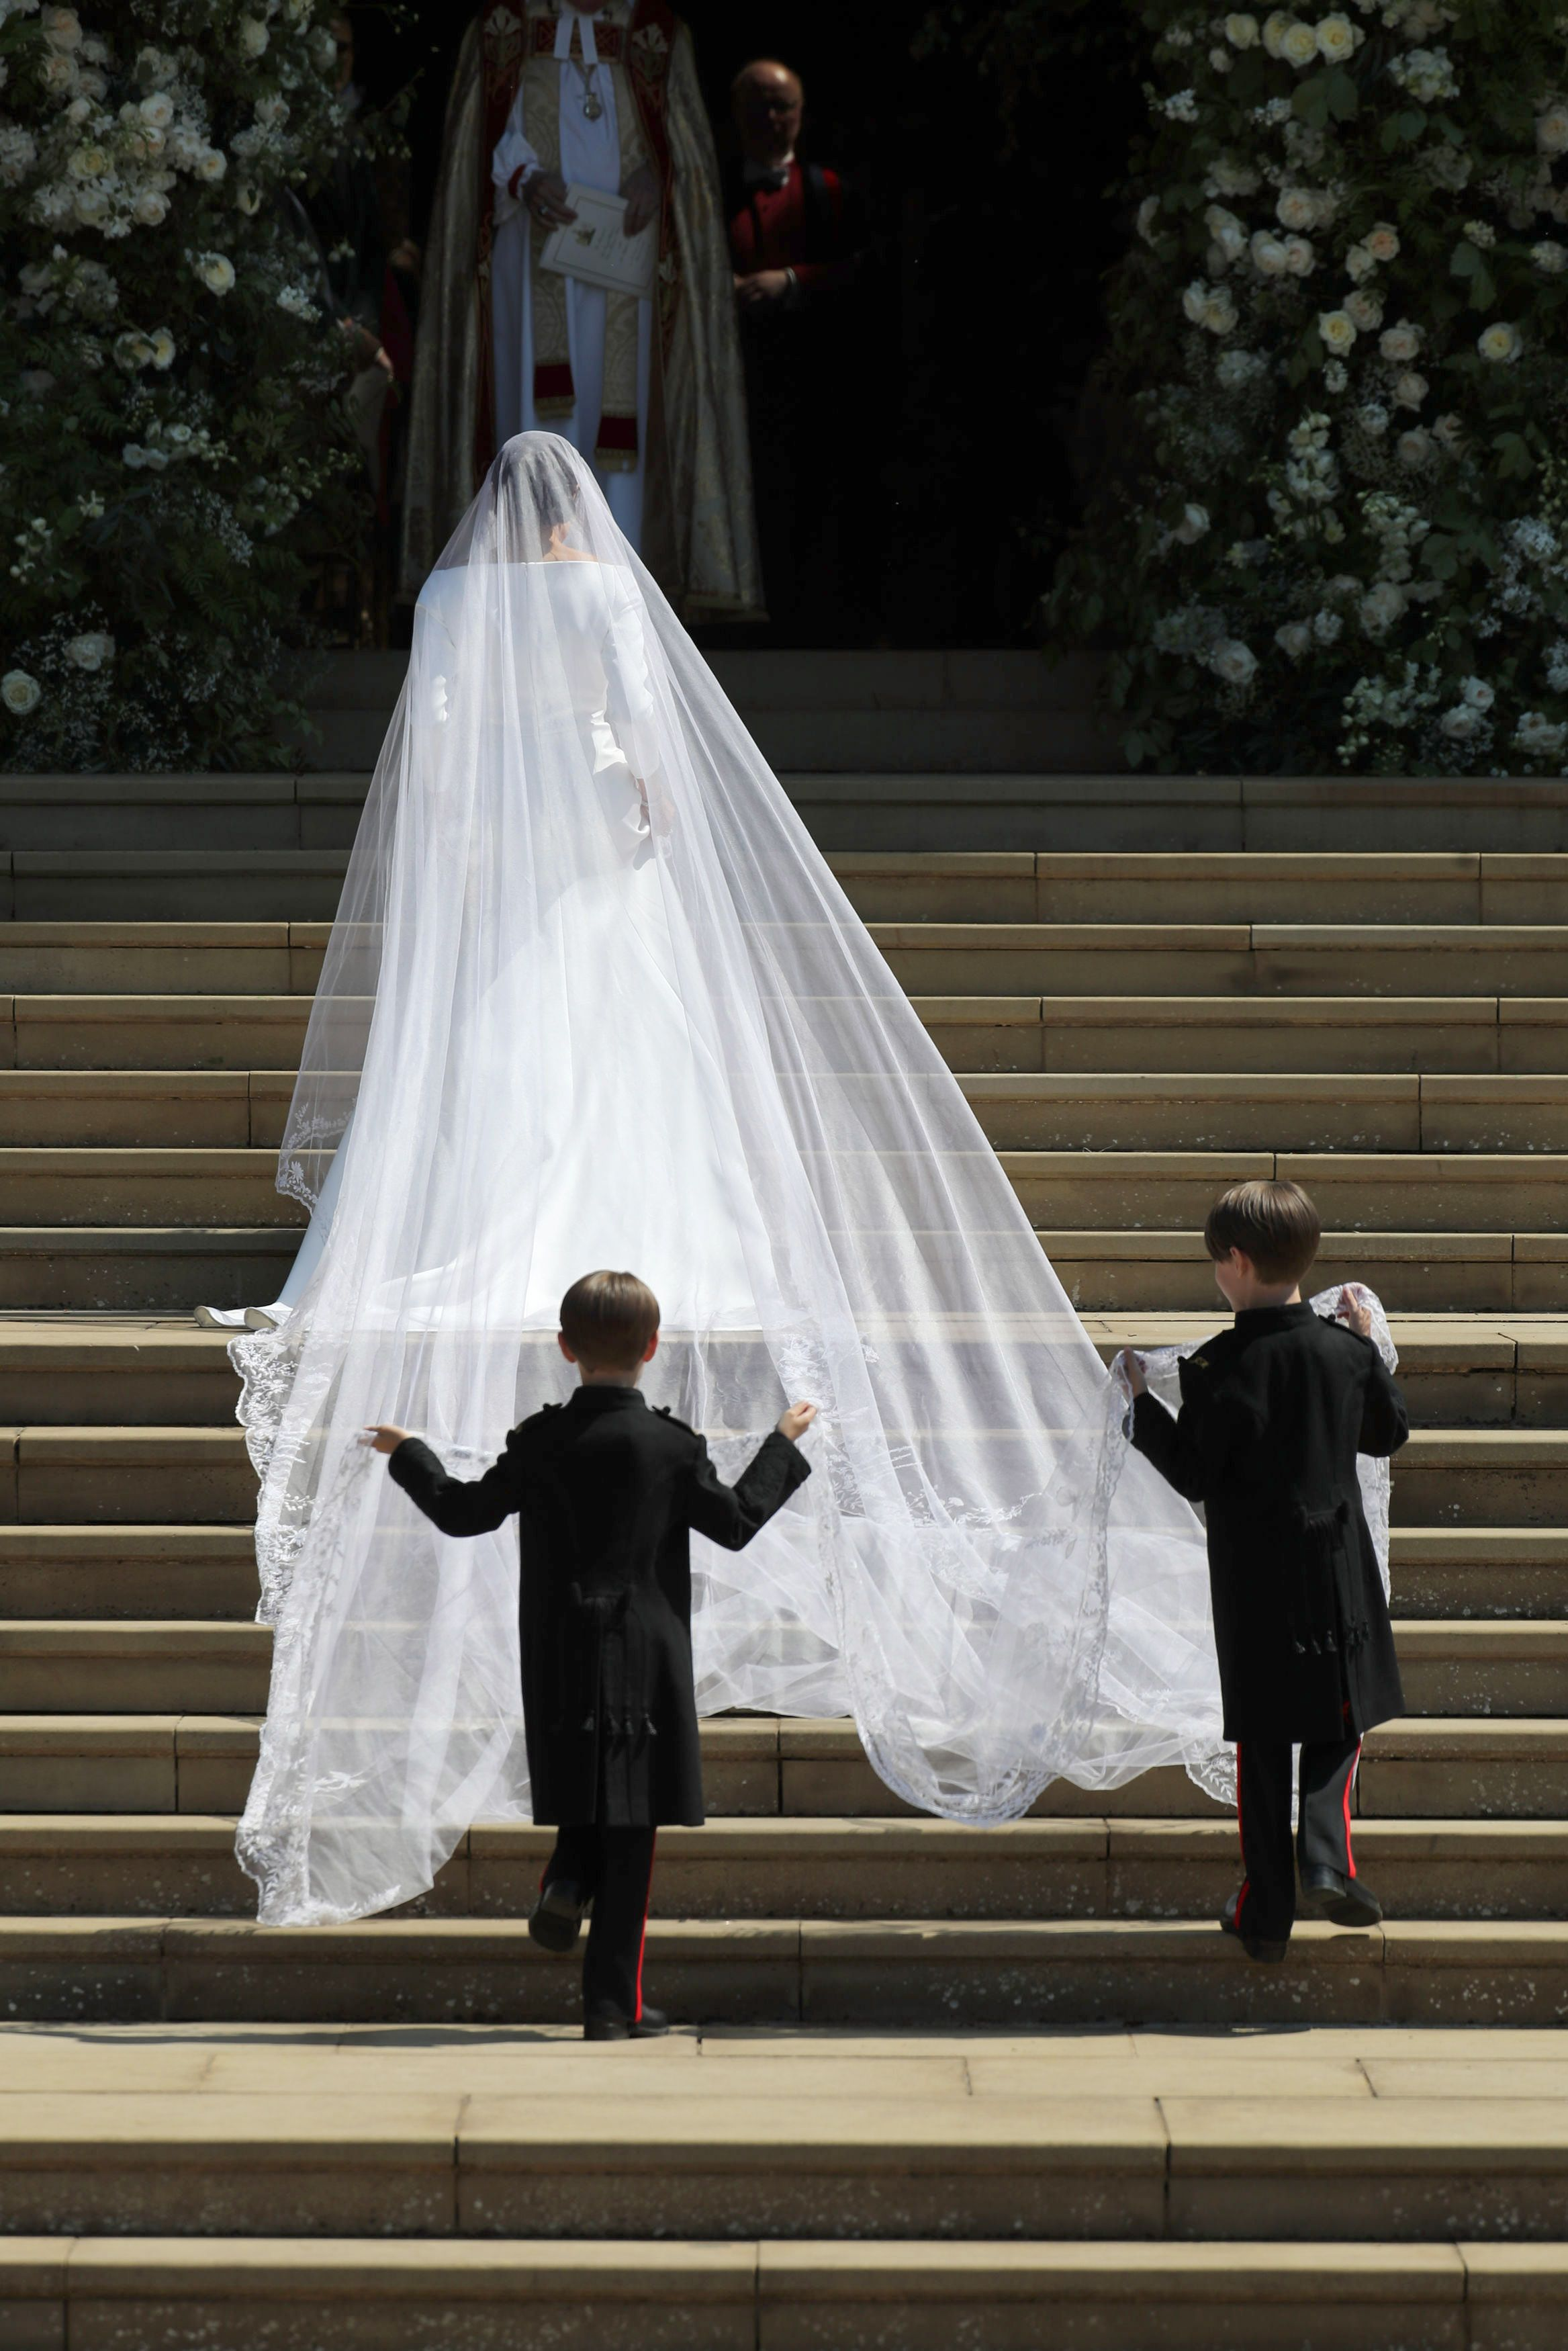 Meghan Markle Wedding.How Prince Harry And Meghan Markle S Royal Wedding Stacks Up With